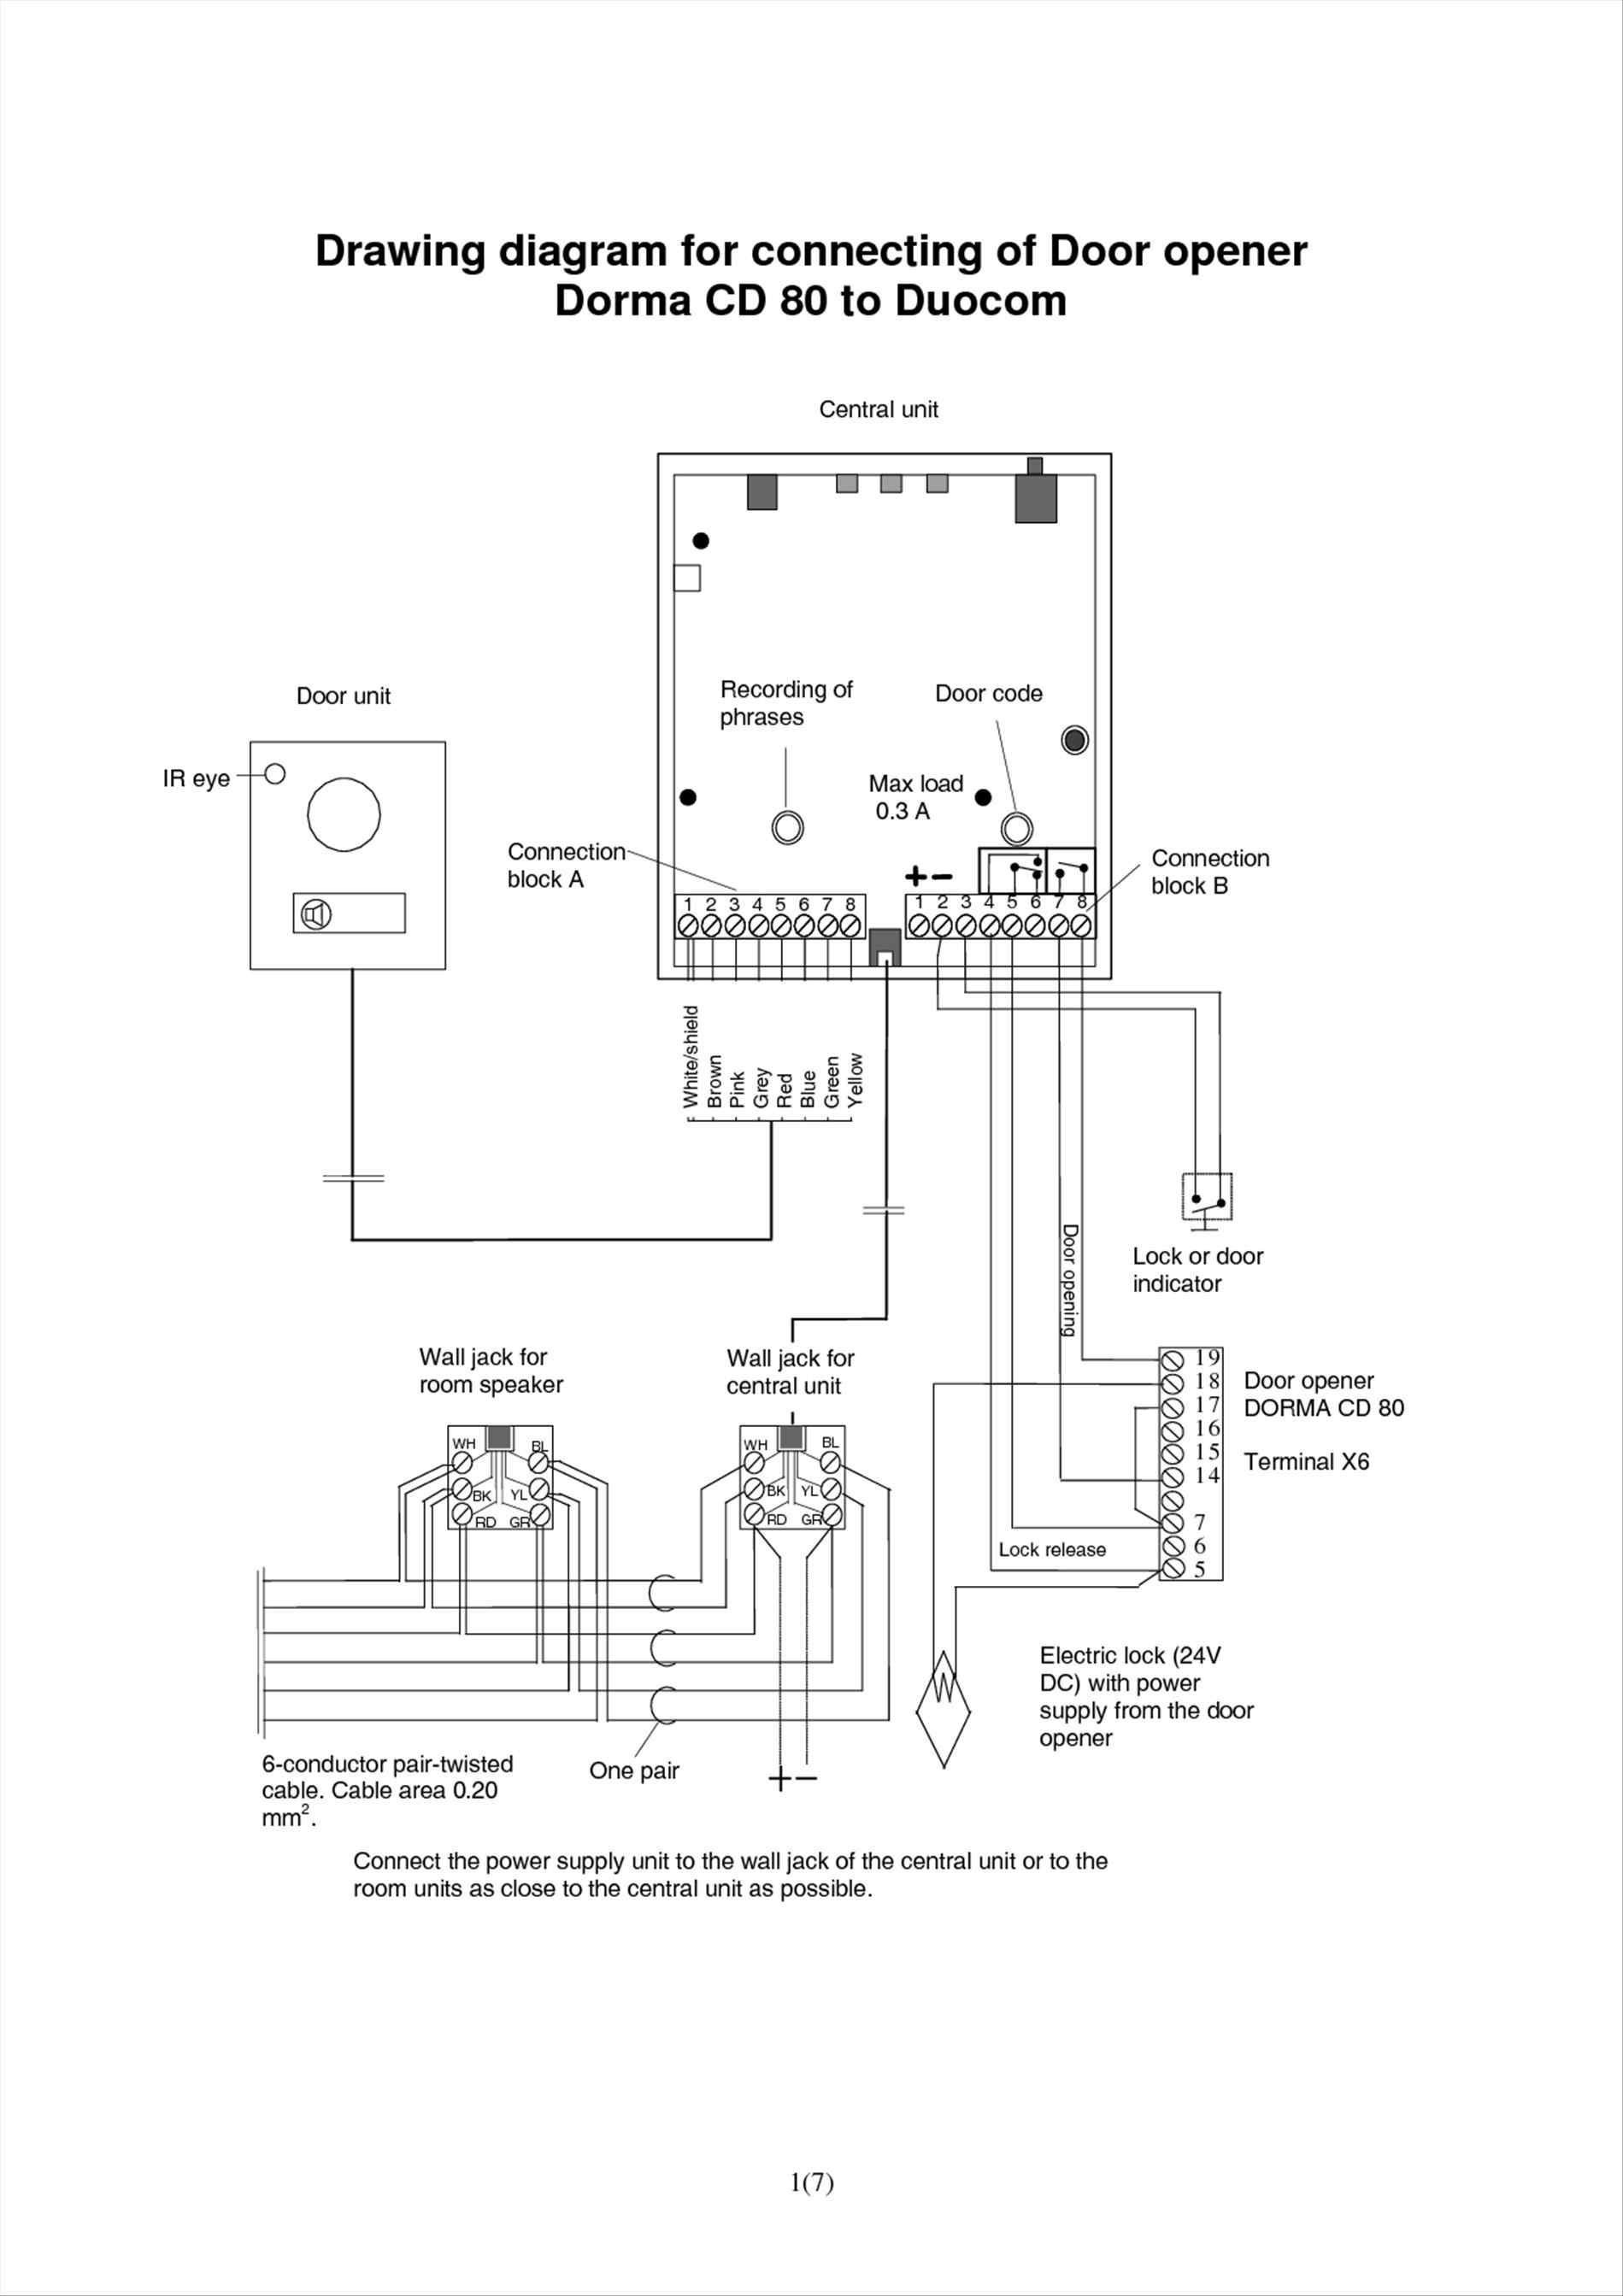 garage door opener wiring diagram Download-Wiring Diagram for Stanley Garage Door Opener Fresh Sears Craftsman Garage Door Opener Wiring Diagram Download 9-h